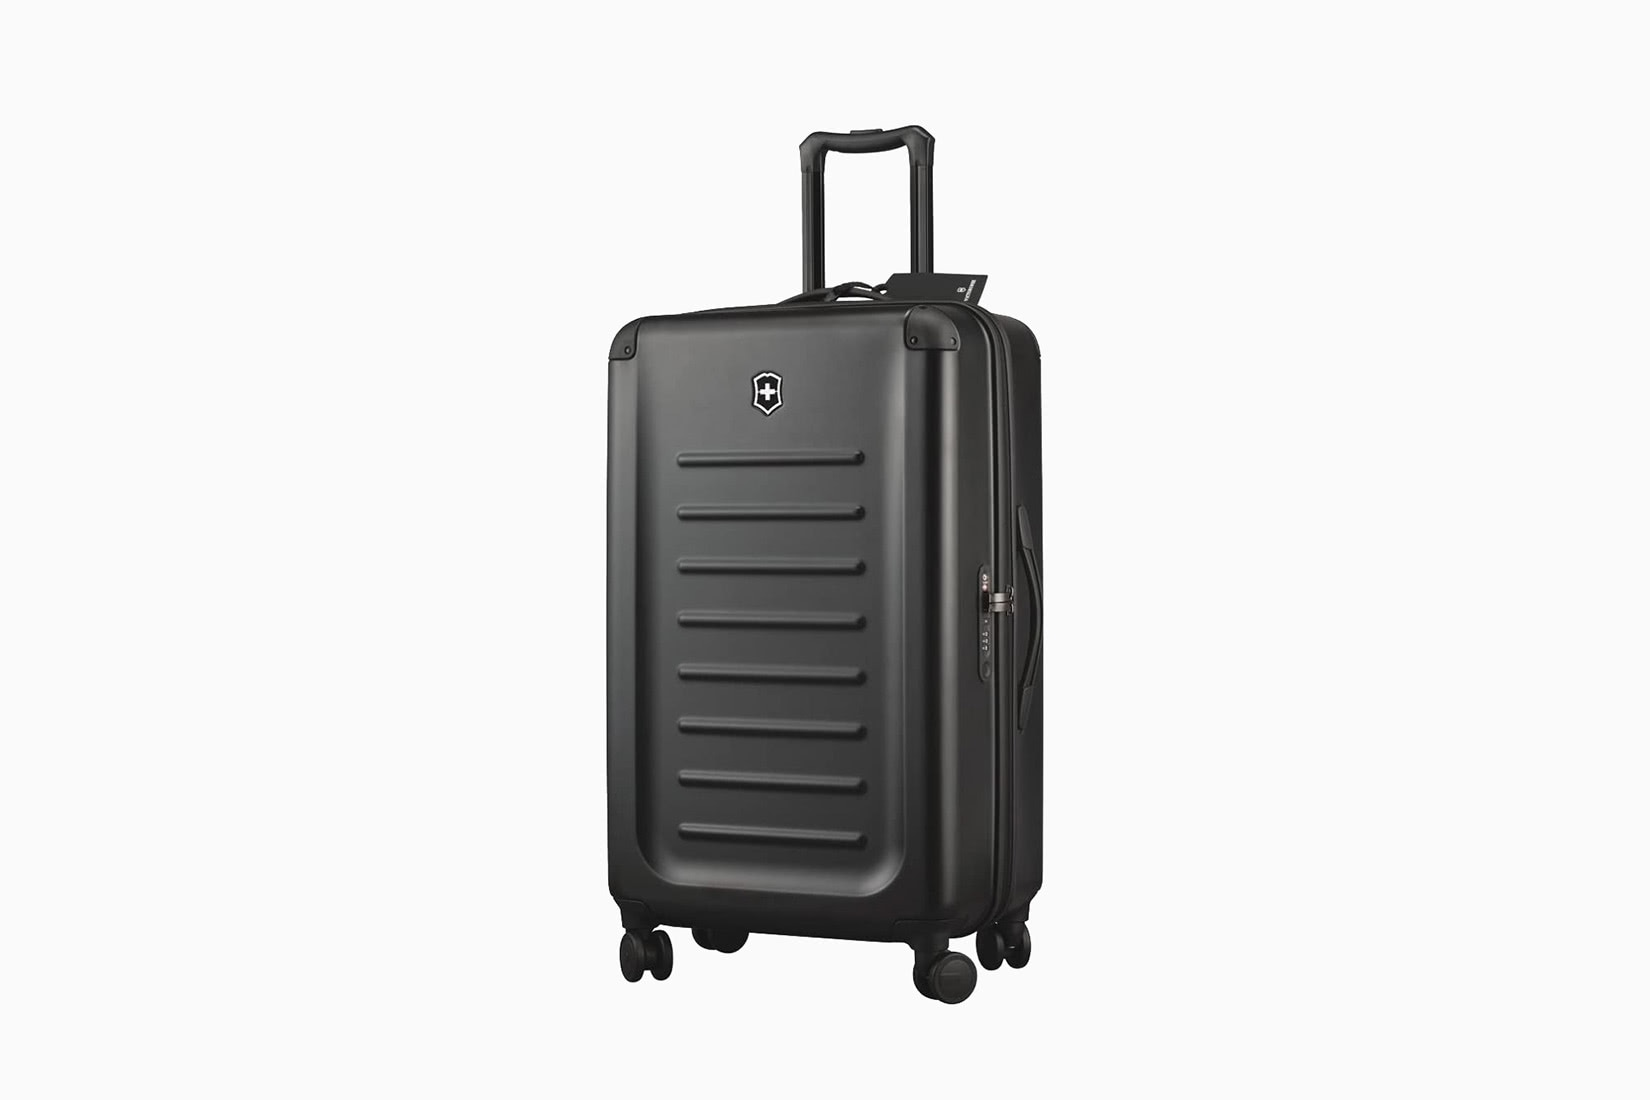 best luggage brands suitcase business travel victorinox - Luxe Digital